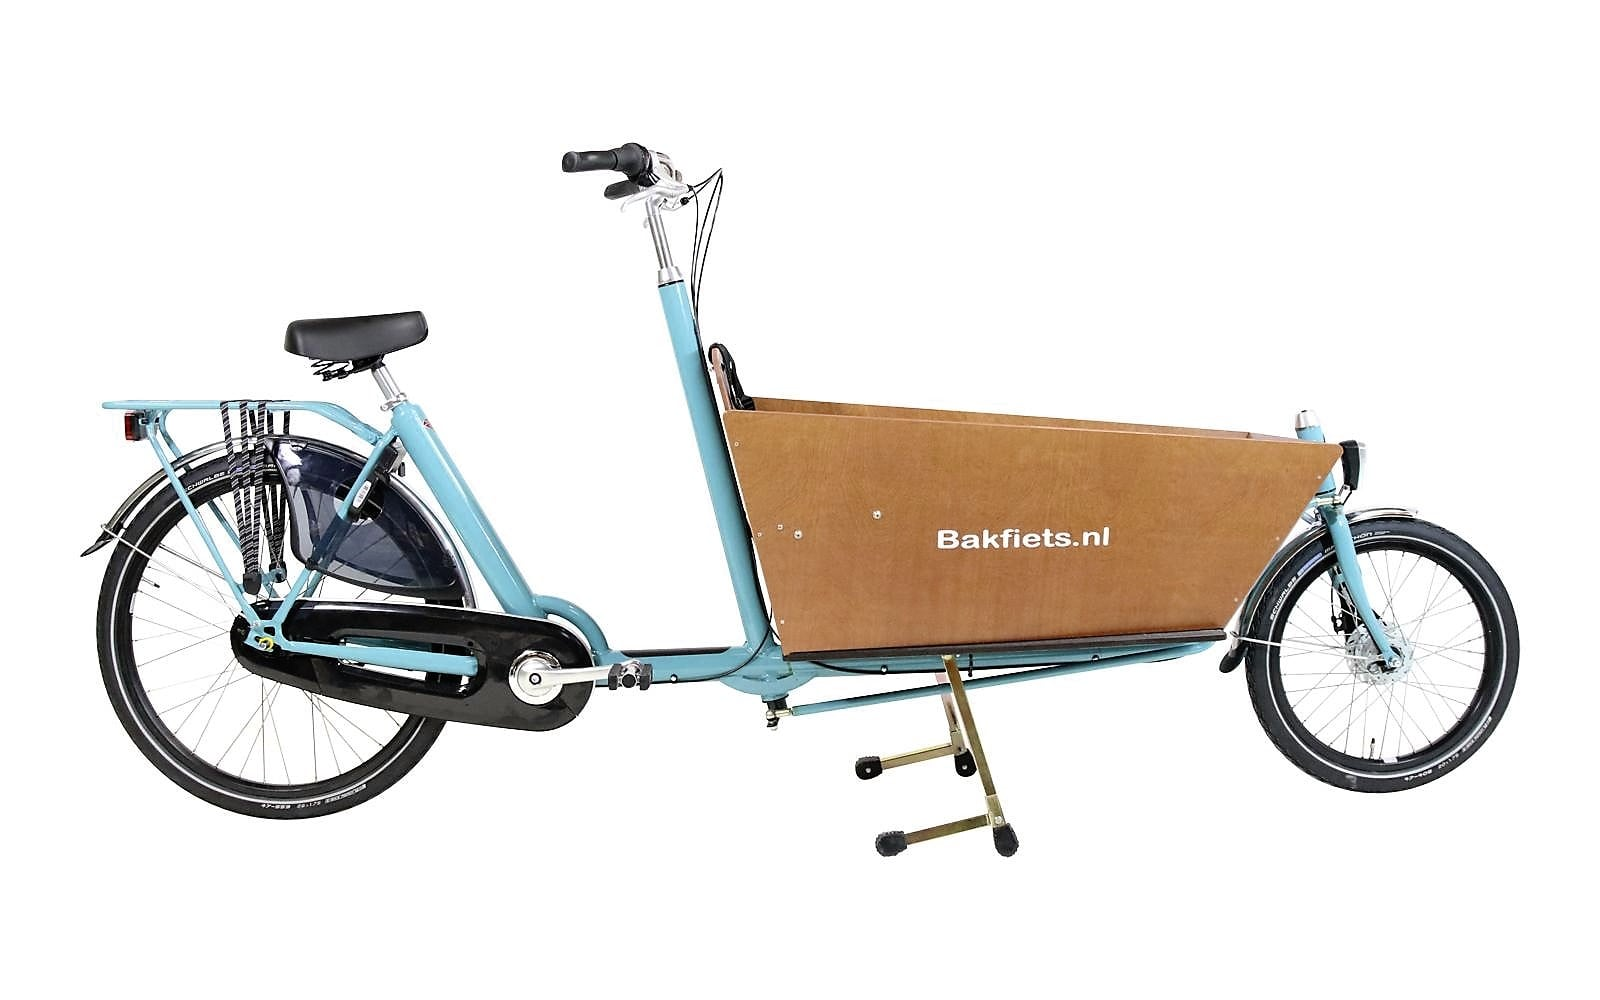 cargolung-turquoise_5 Bakfiets